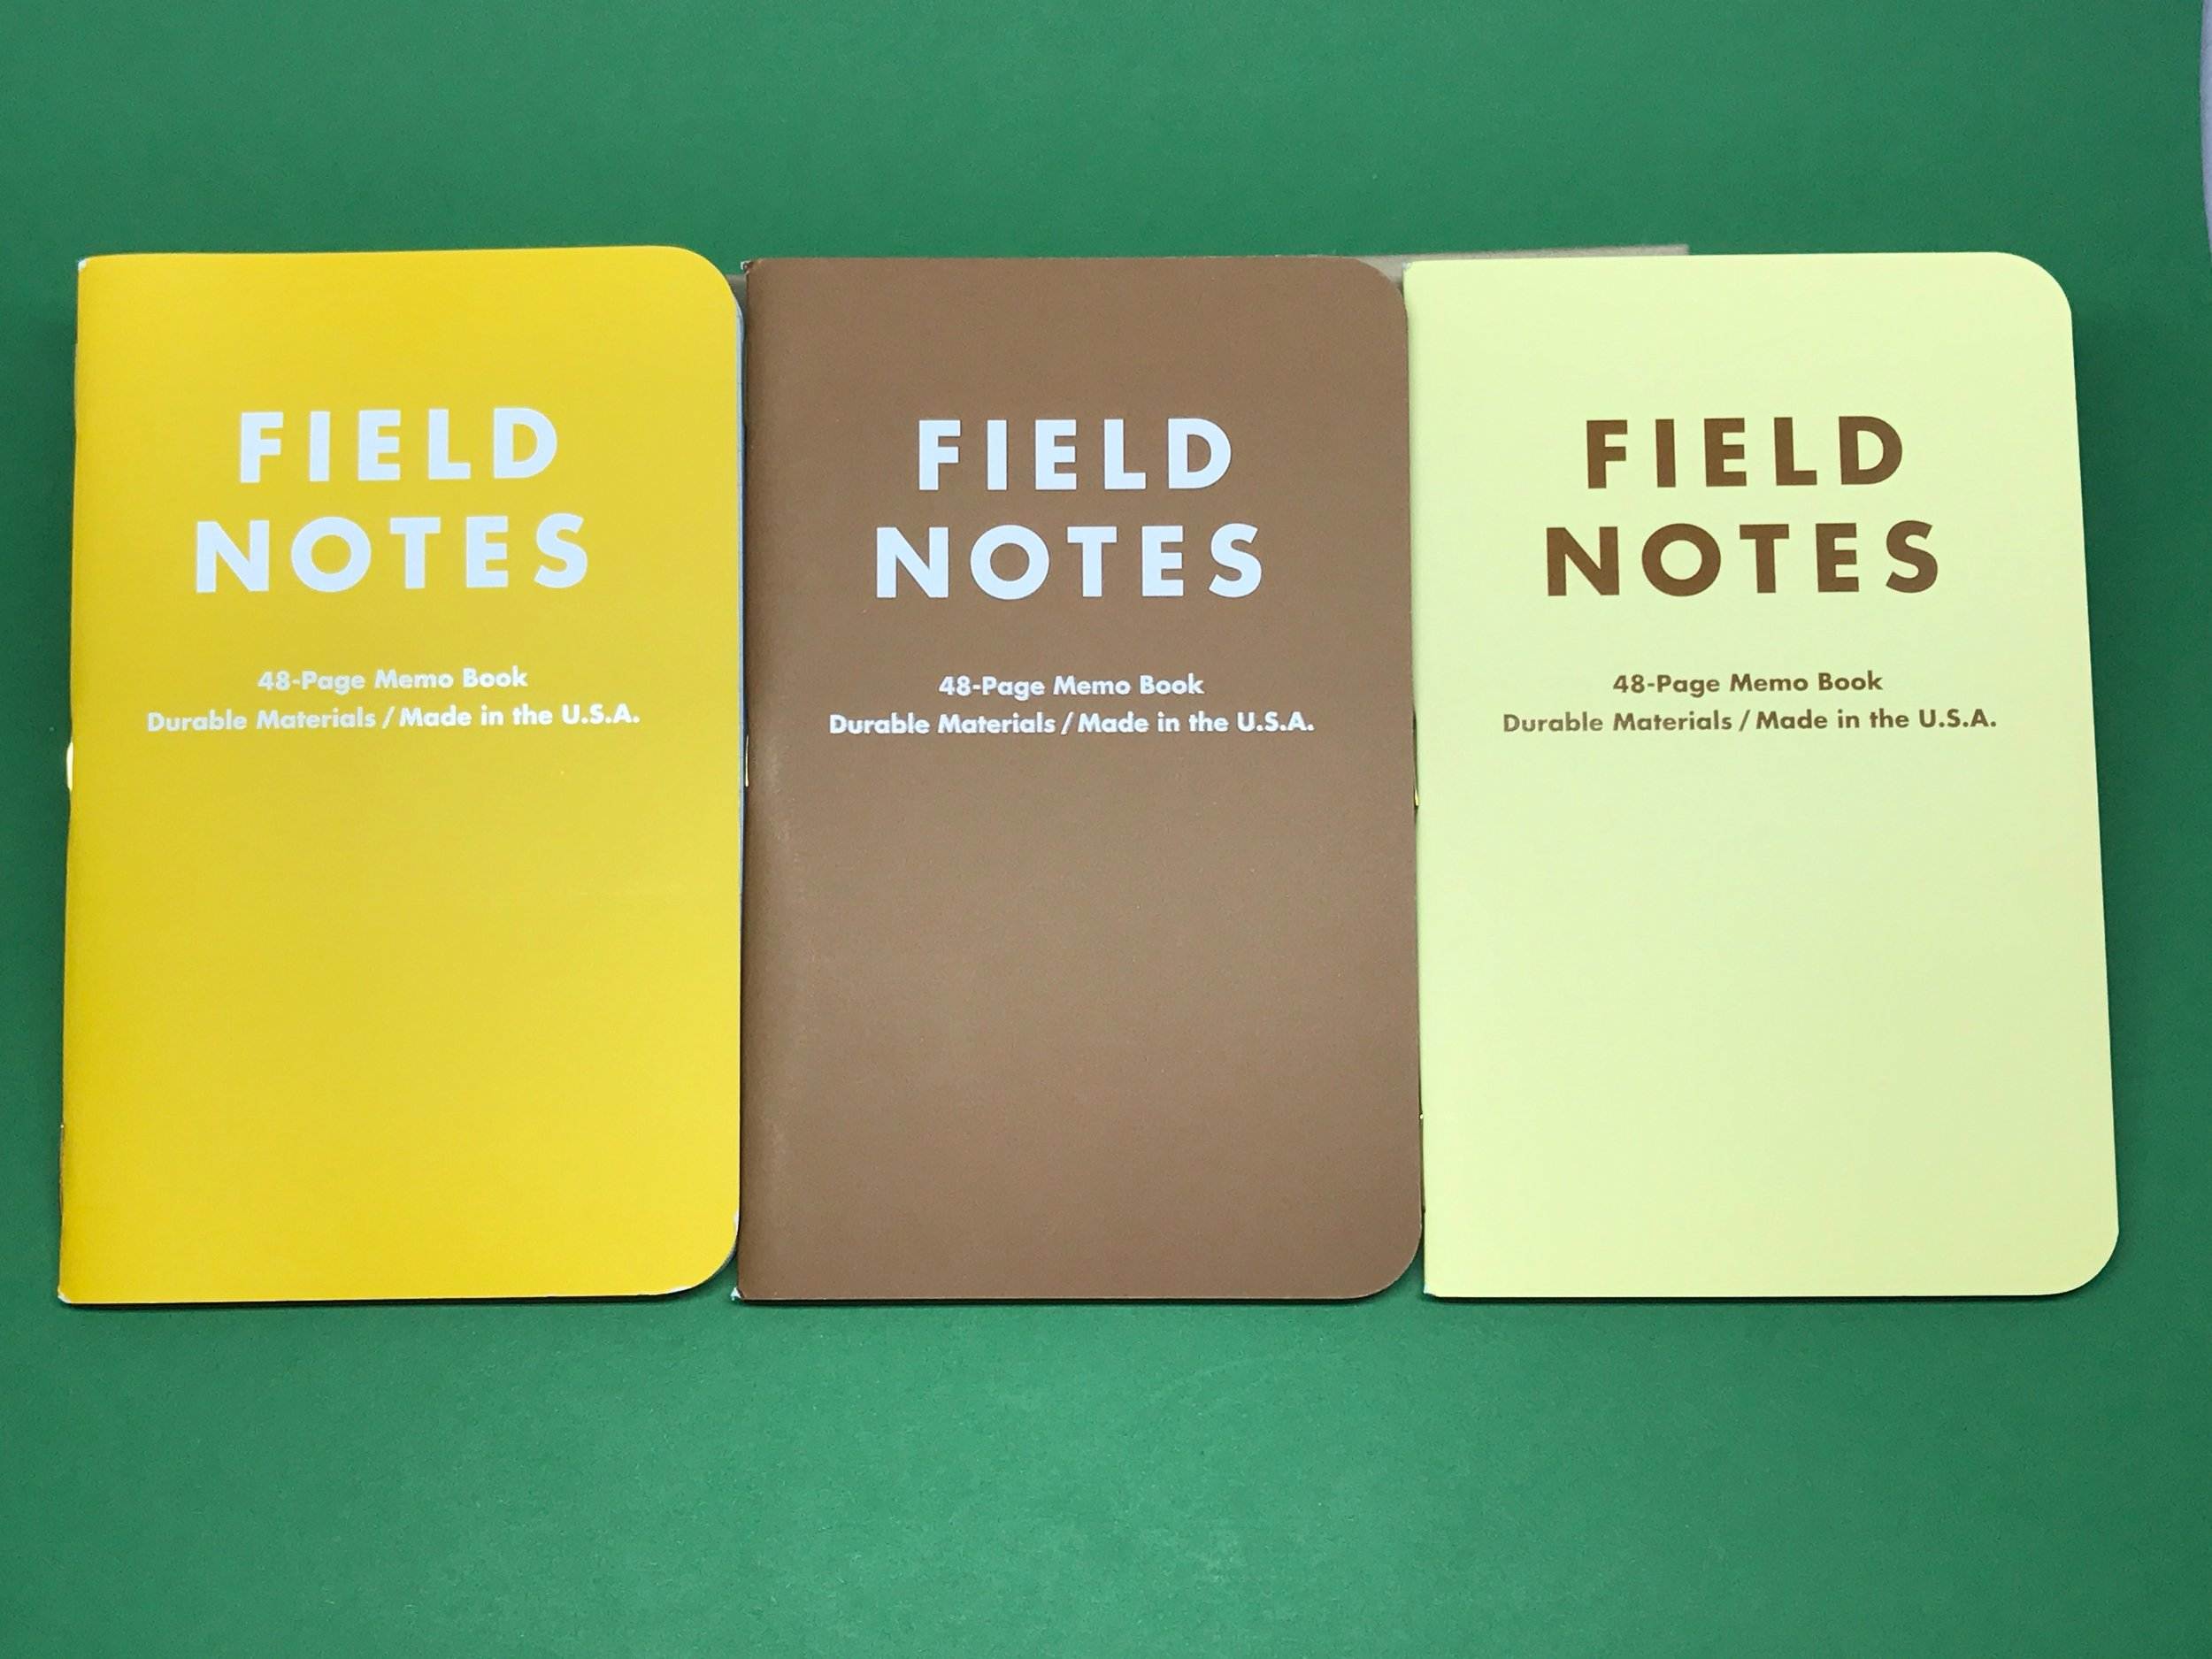 field-notes-drink-local-6.jpg